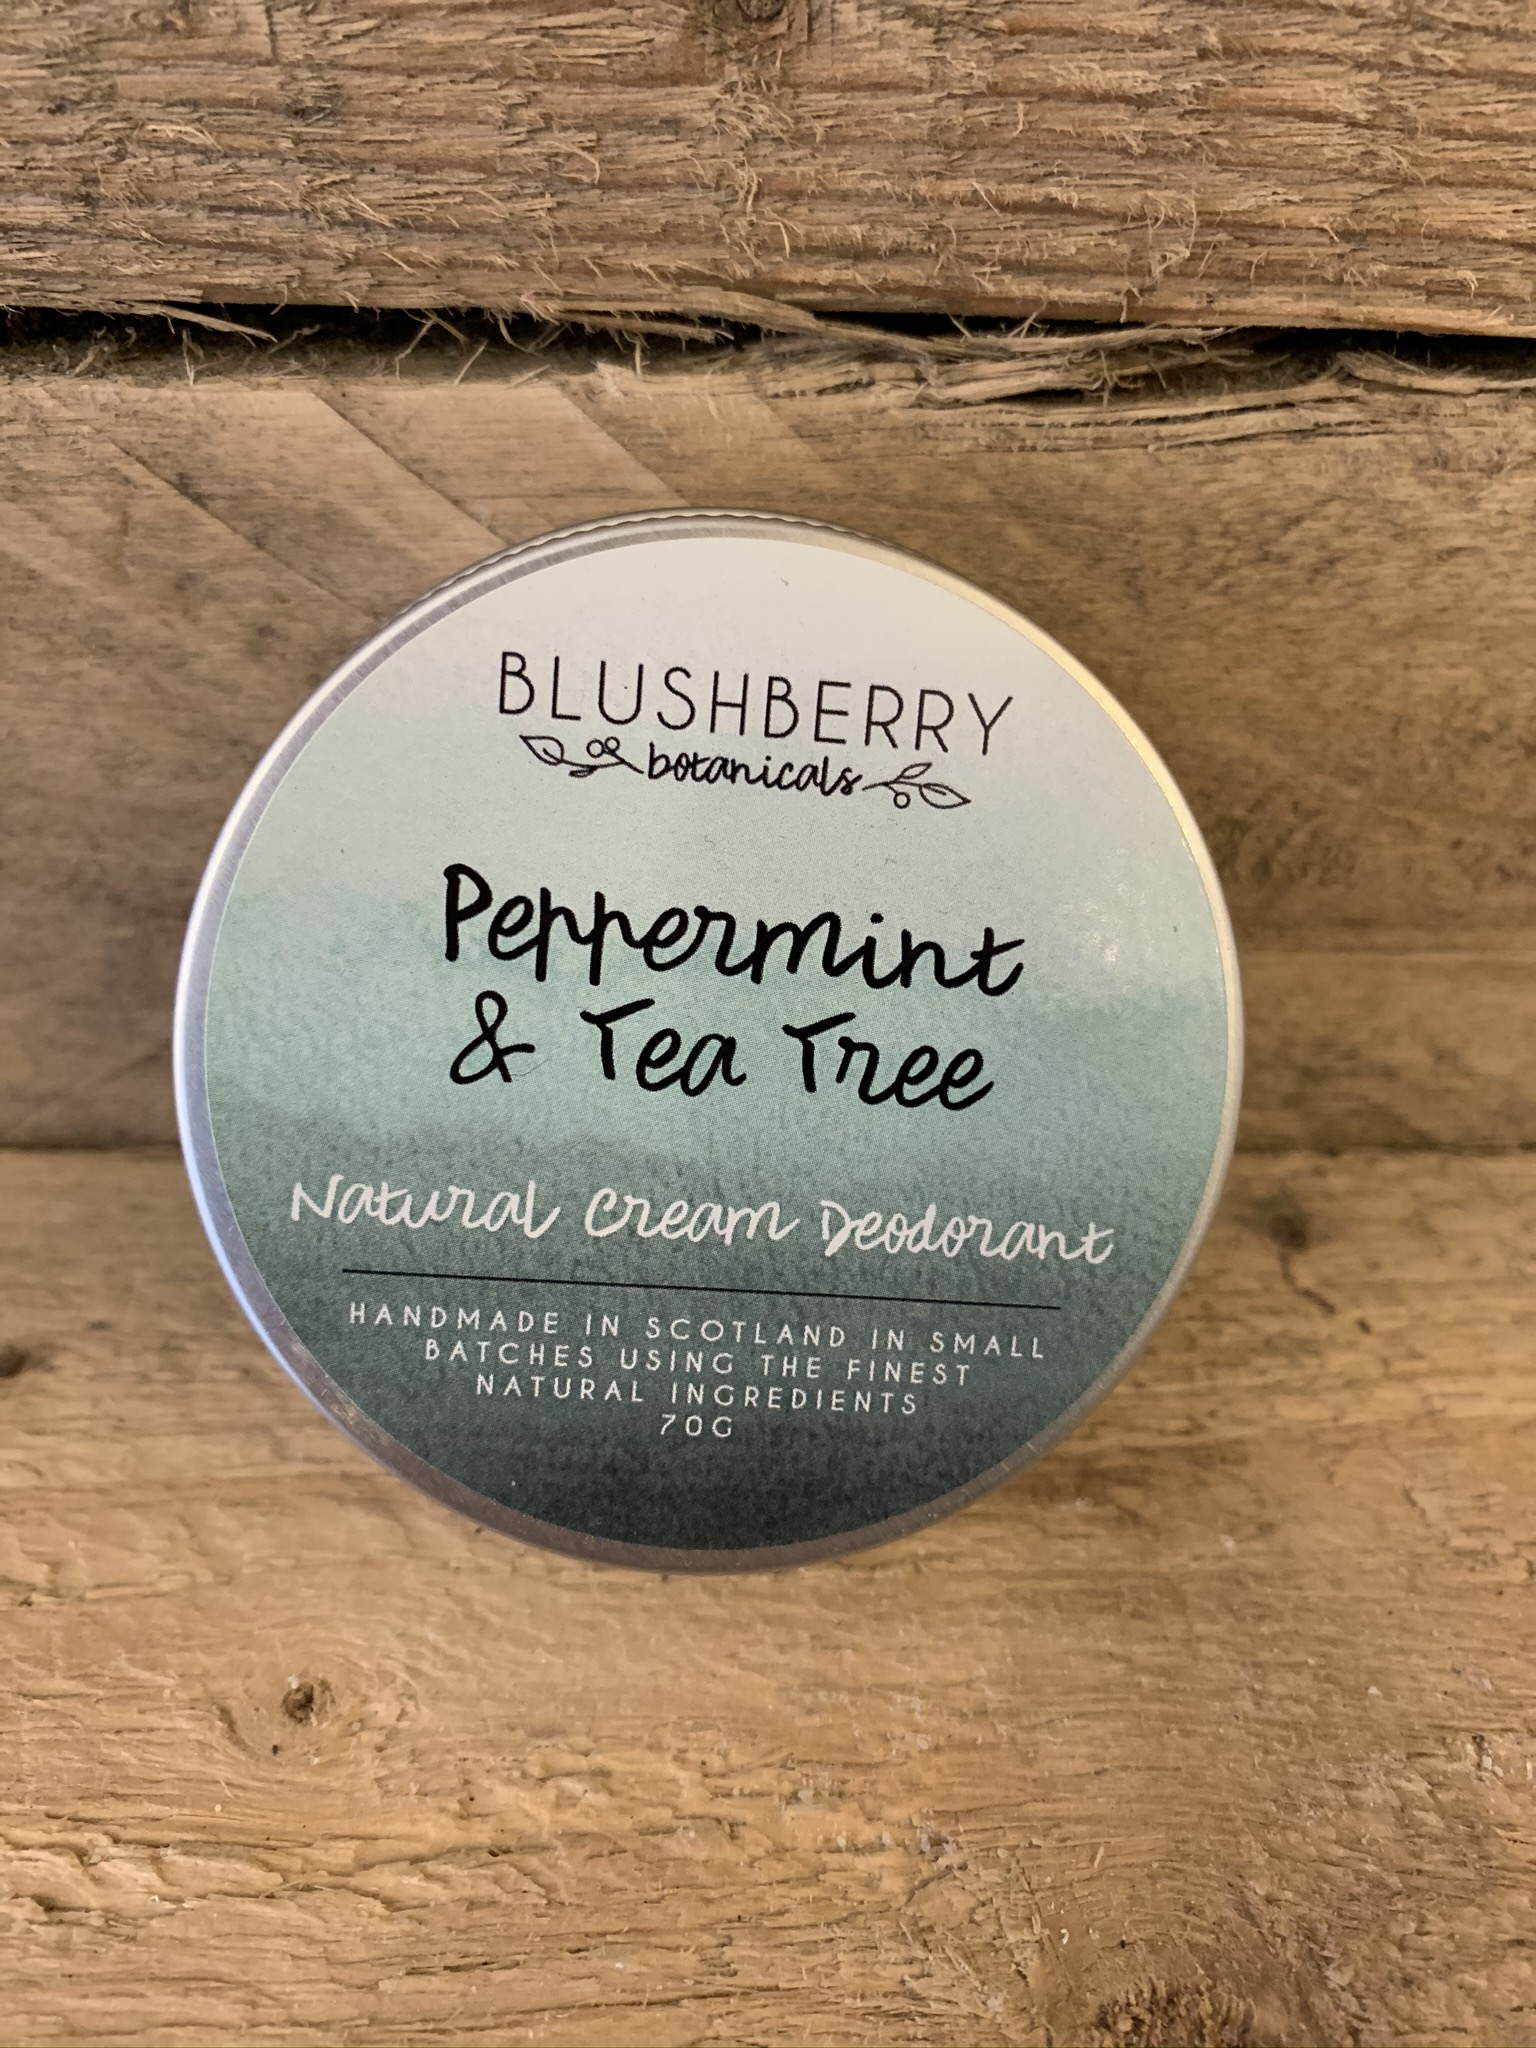 Peppermint and Tea Tree Cream Deodorant by Blushberry Botanicals